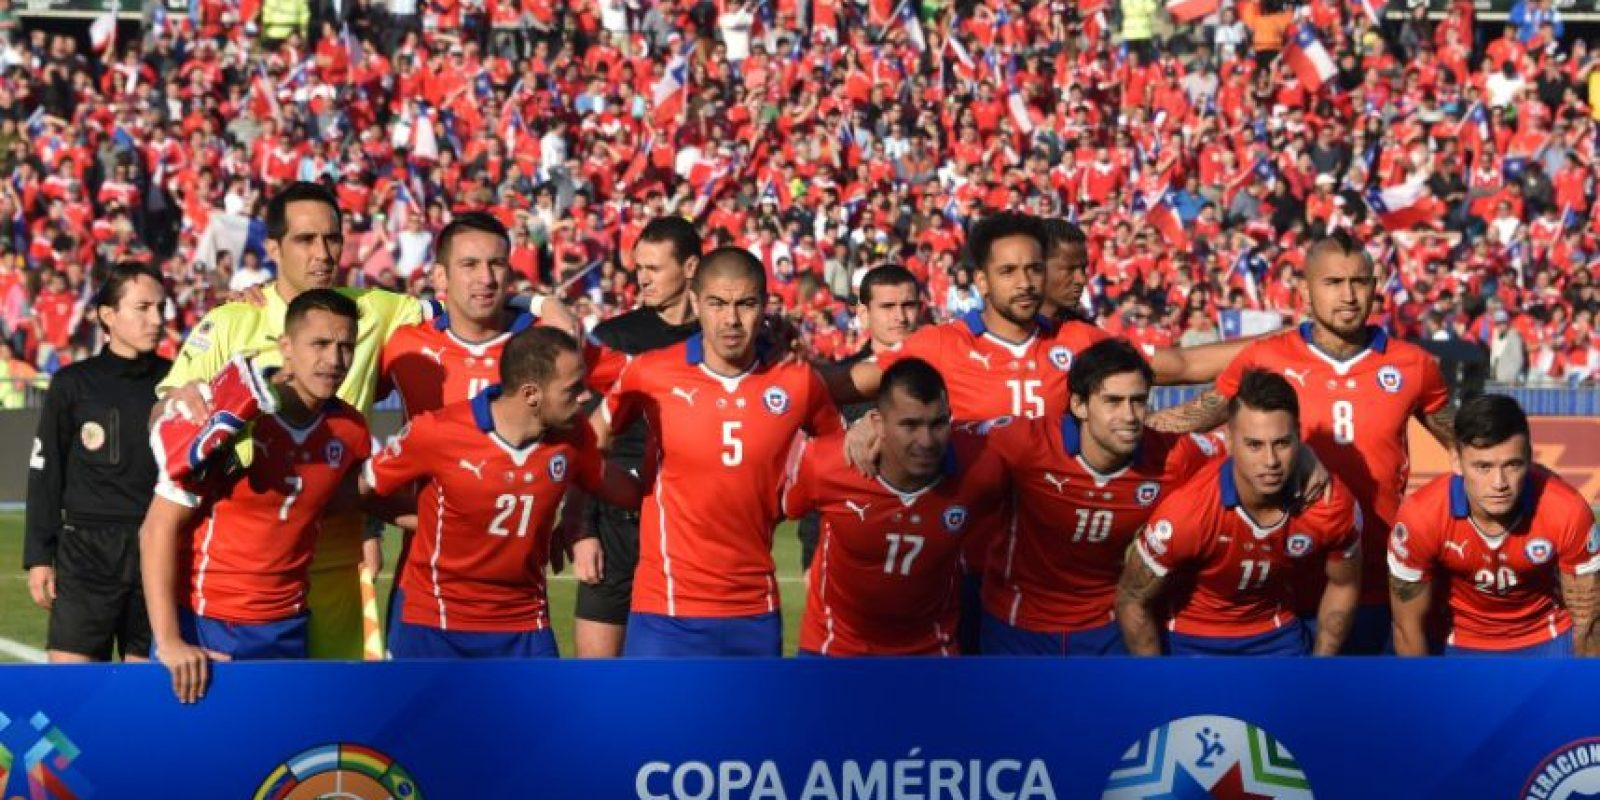 1. Chile campeón de la Copa América 2015 Foto: Getty Images